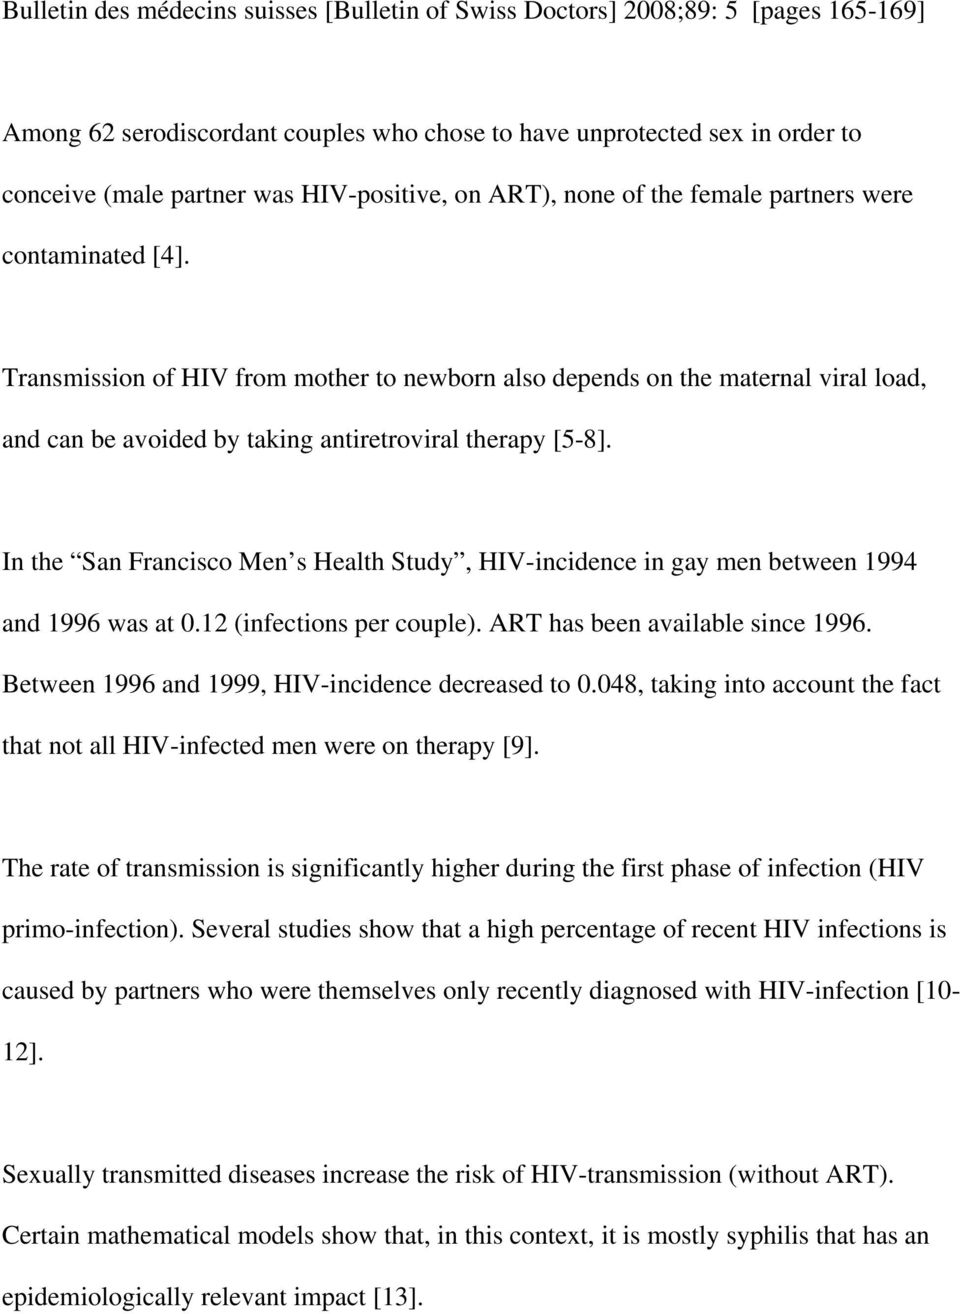 Transmission of HIV from mother to newborn also depends on the maternal viral load, and can be avoided by taking antiretroviral therapy [5-8].